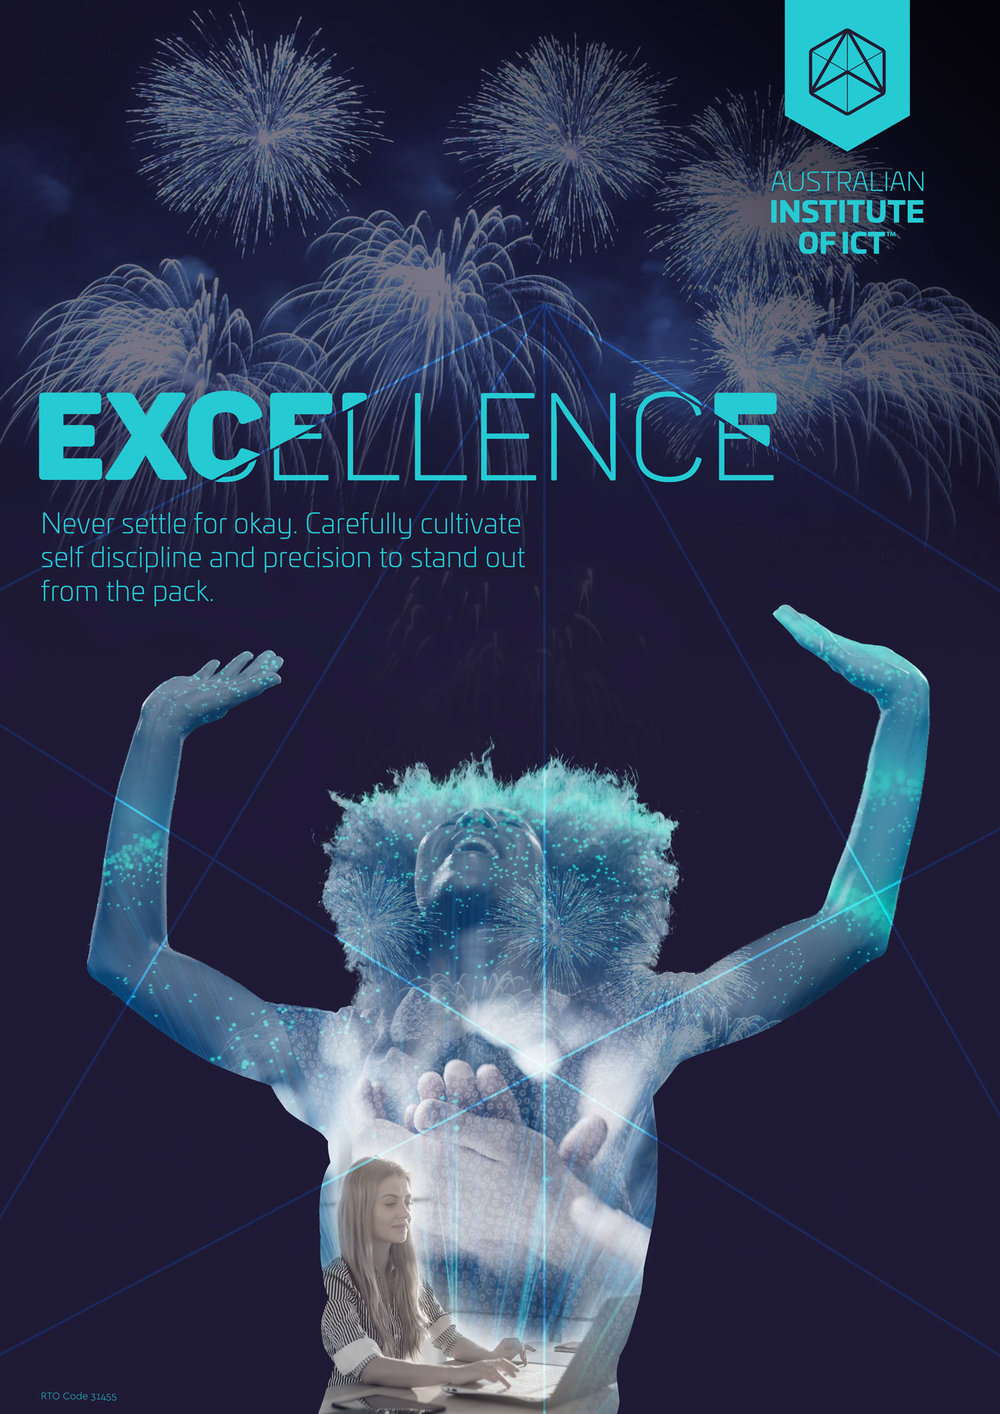 Excellence Poster Design